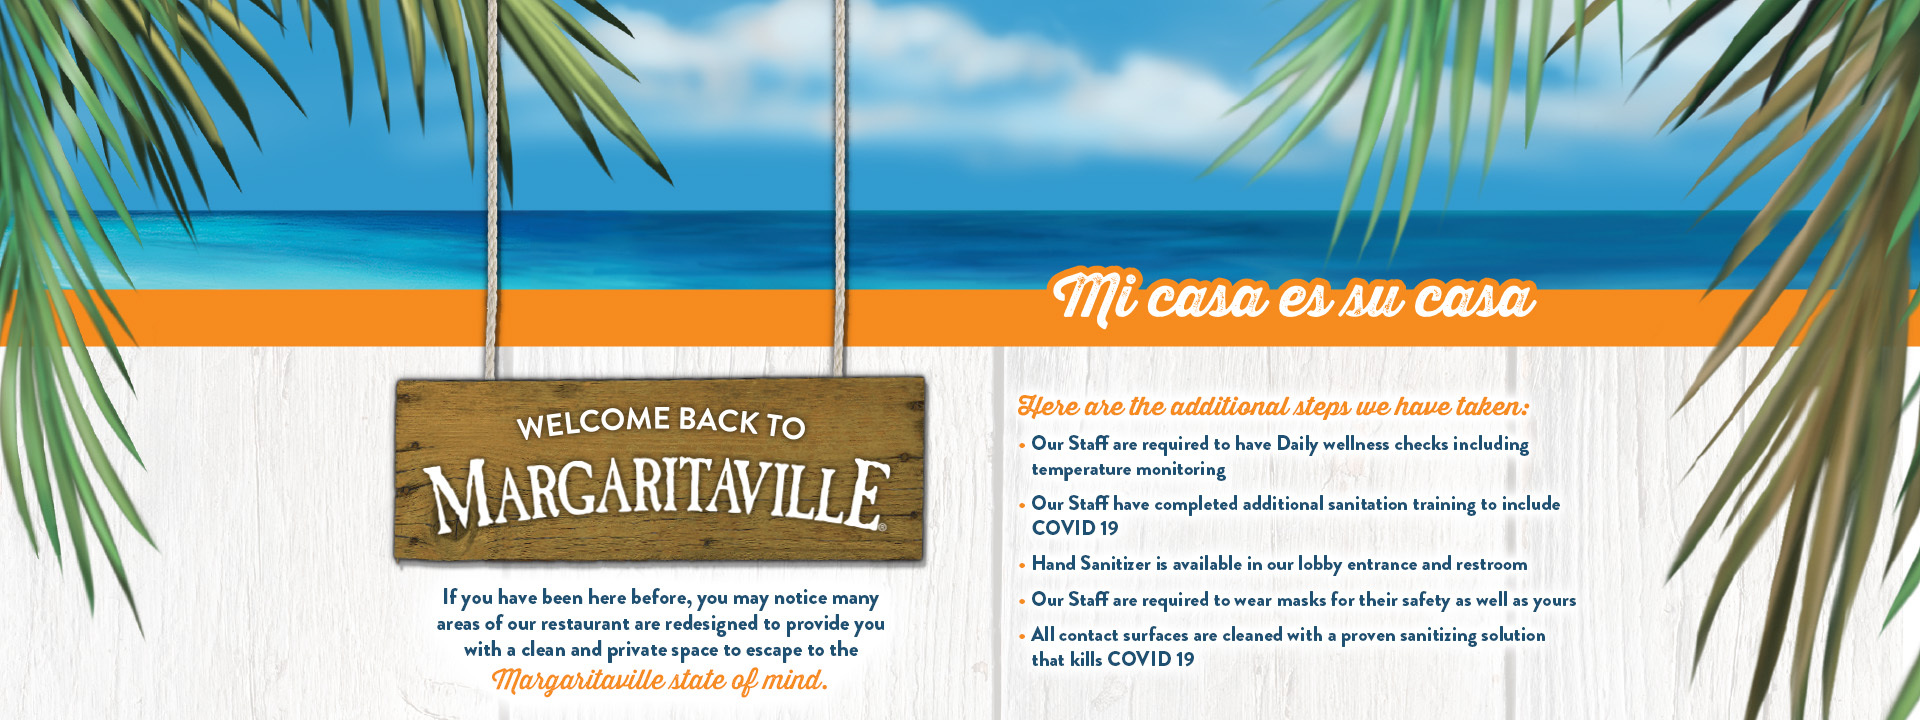 Welcome back to Margaritaville